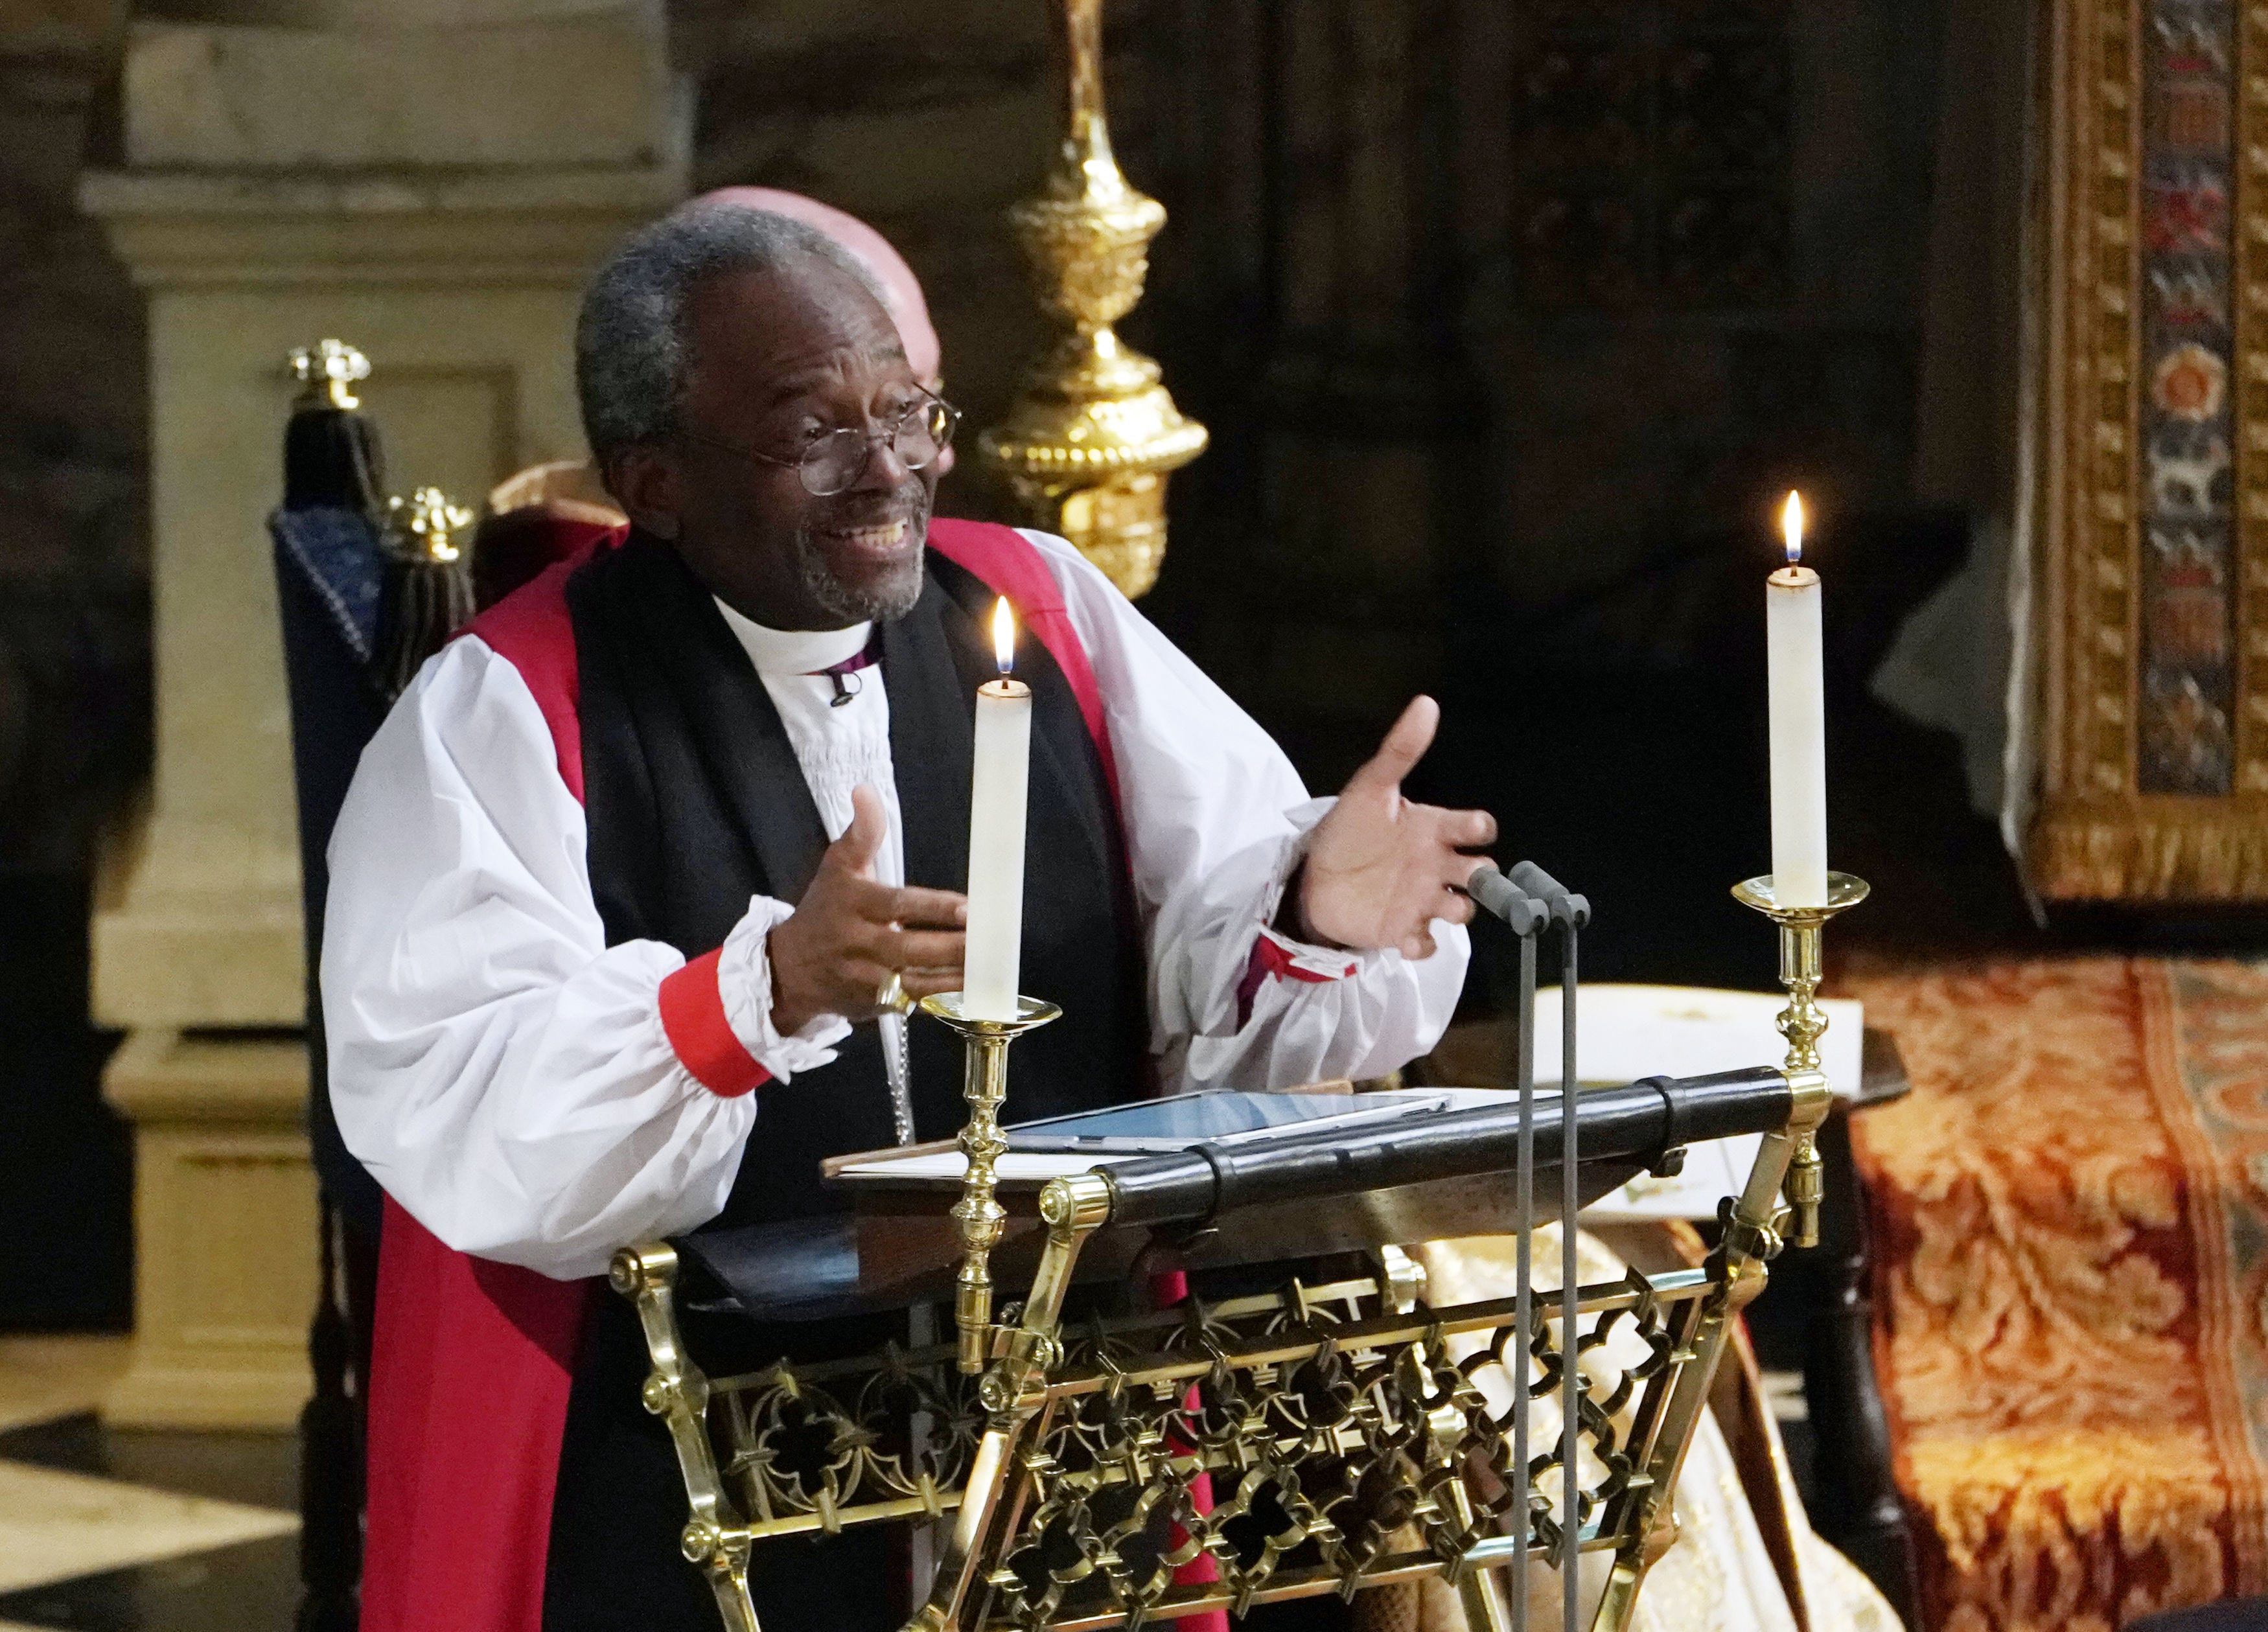 bishop michael curry of prince harry meghan markle wedding in maryland delmarvanow com